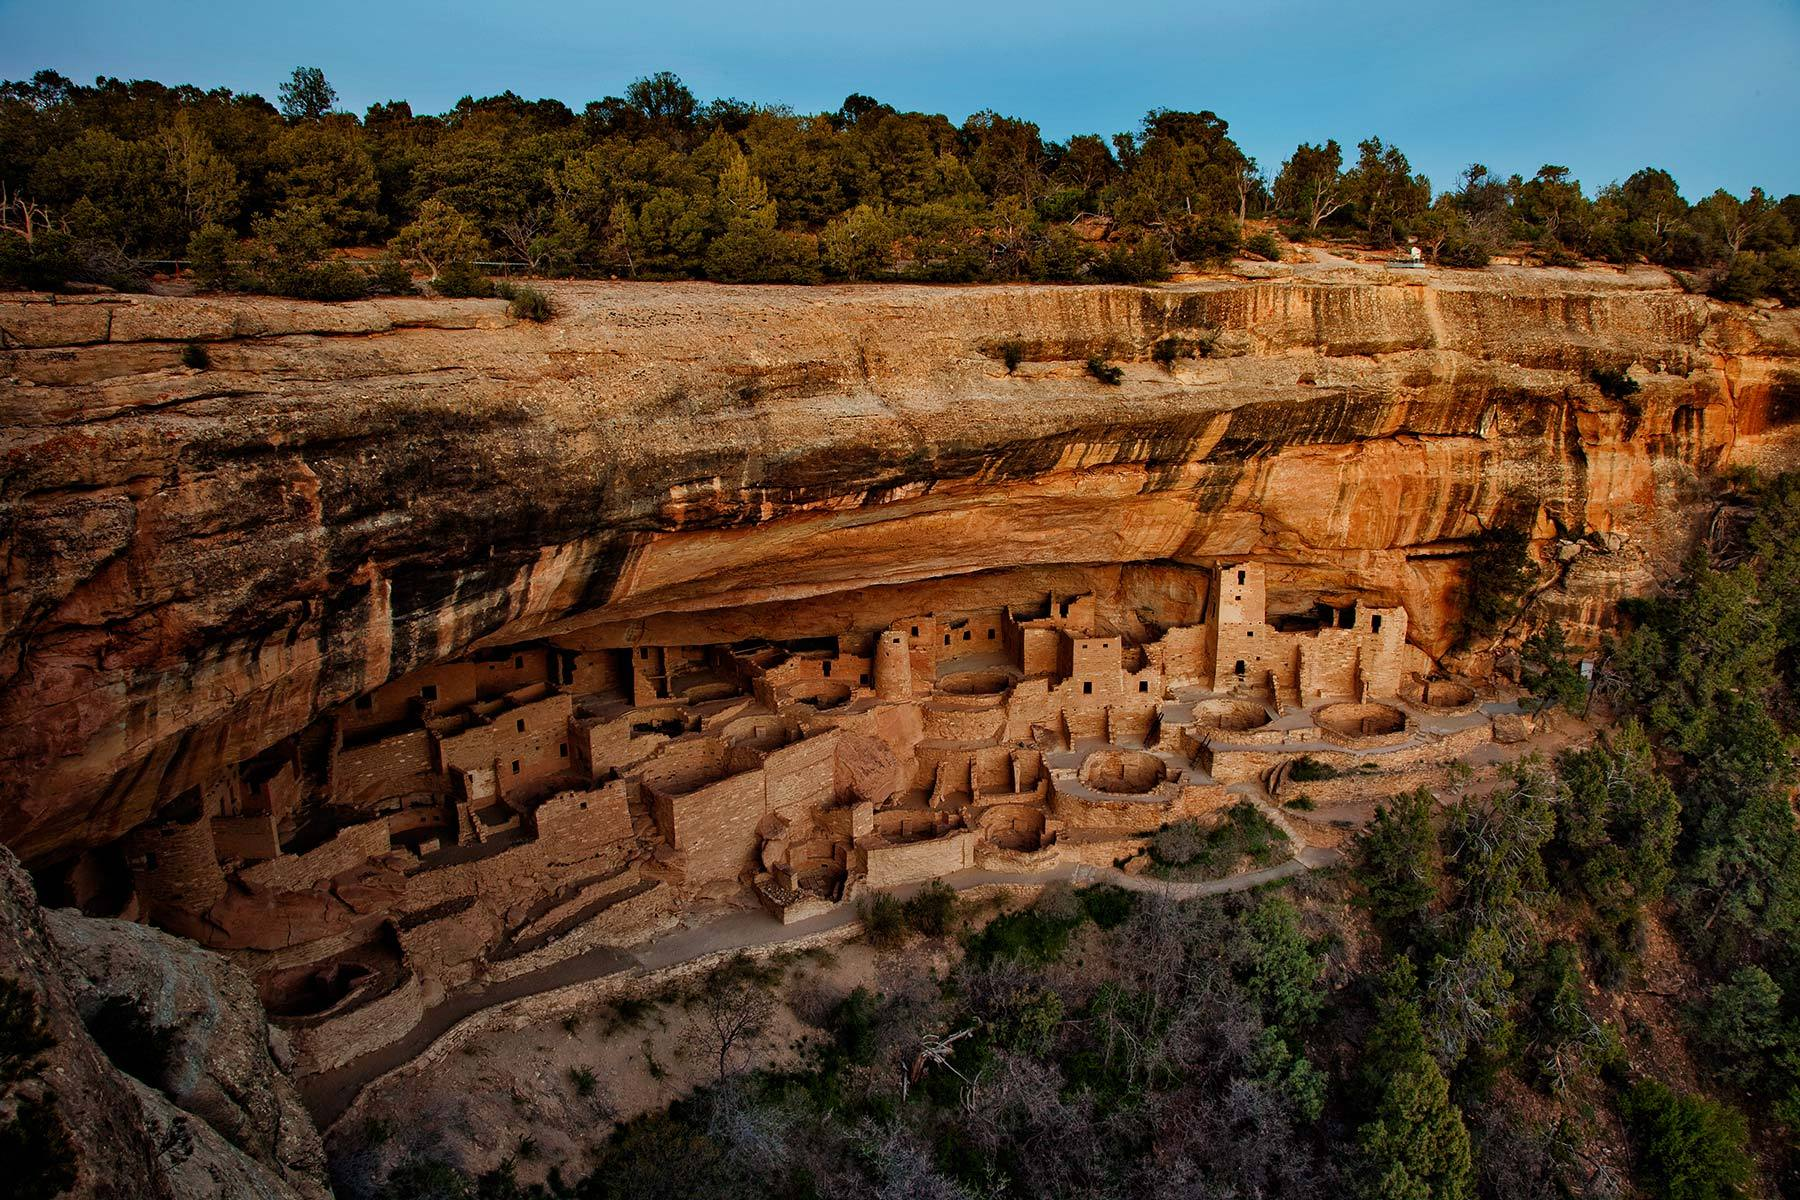 Mesa Verde National Park Confederate Land Art The Apotheosis Of Racist Iconography